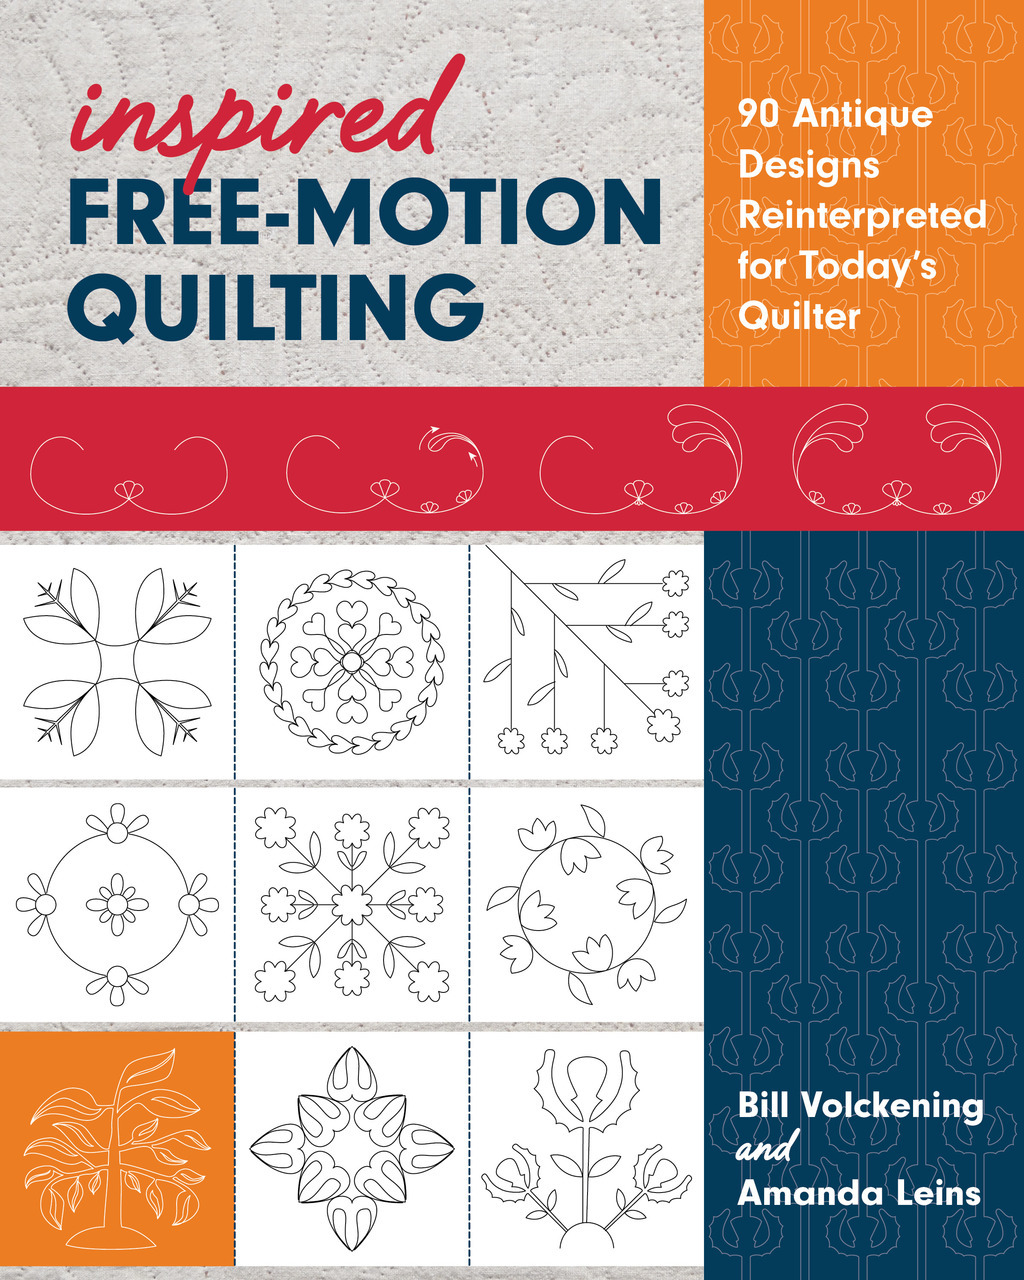 06b16e5dbc free motion quilting Archives - Kustom Kwilts